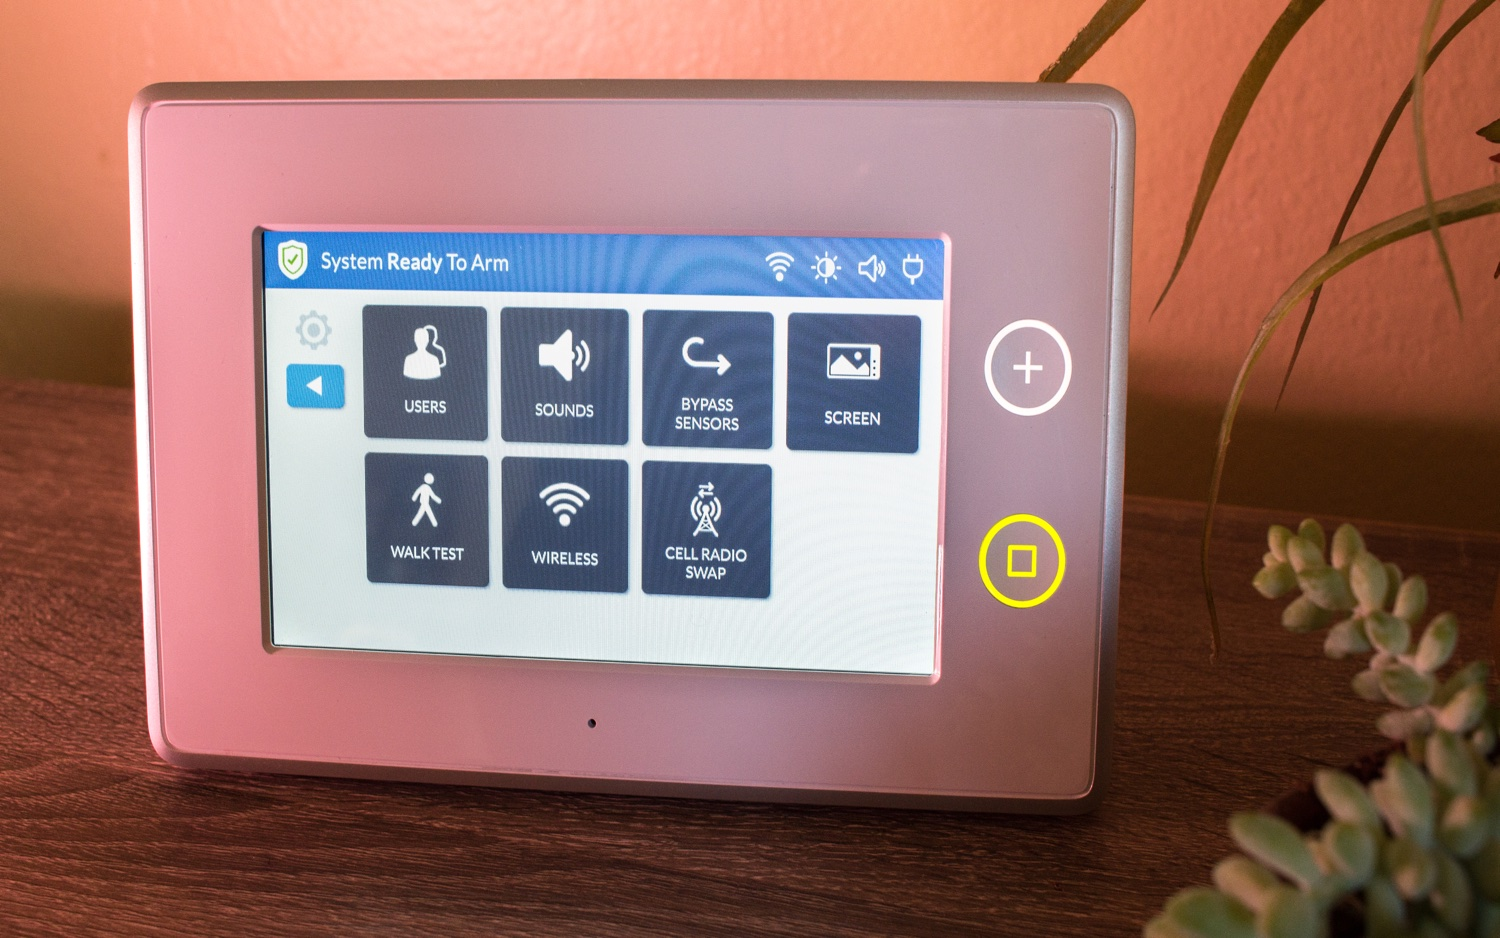 Samsung SmartThings ADT Home Security Starter Kit - Full Review and